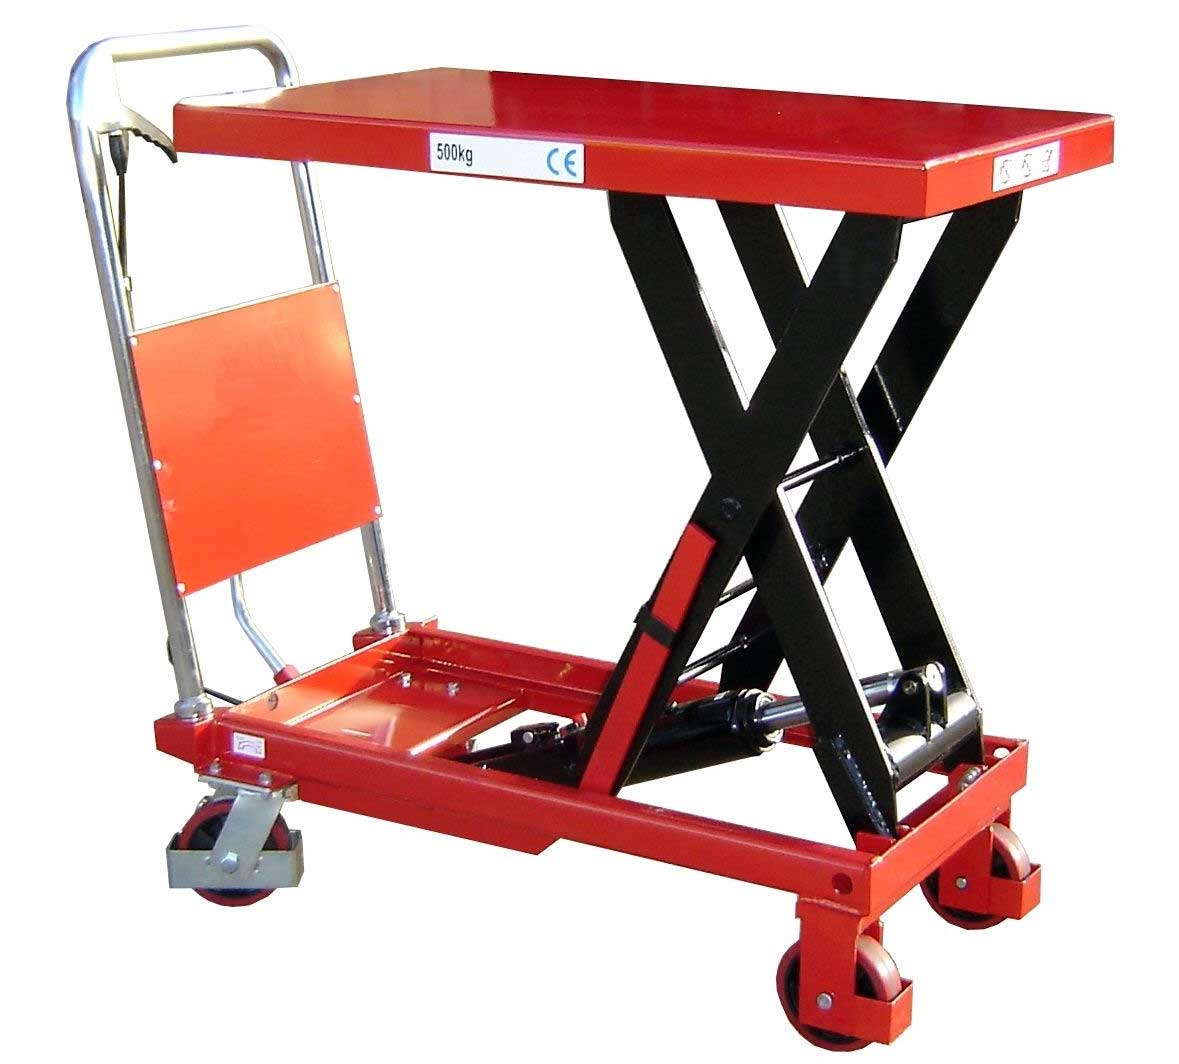 Midlands Based Engineering Company Take Delivery Of Heavy Duty 500 kg Mobile Scissor Table